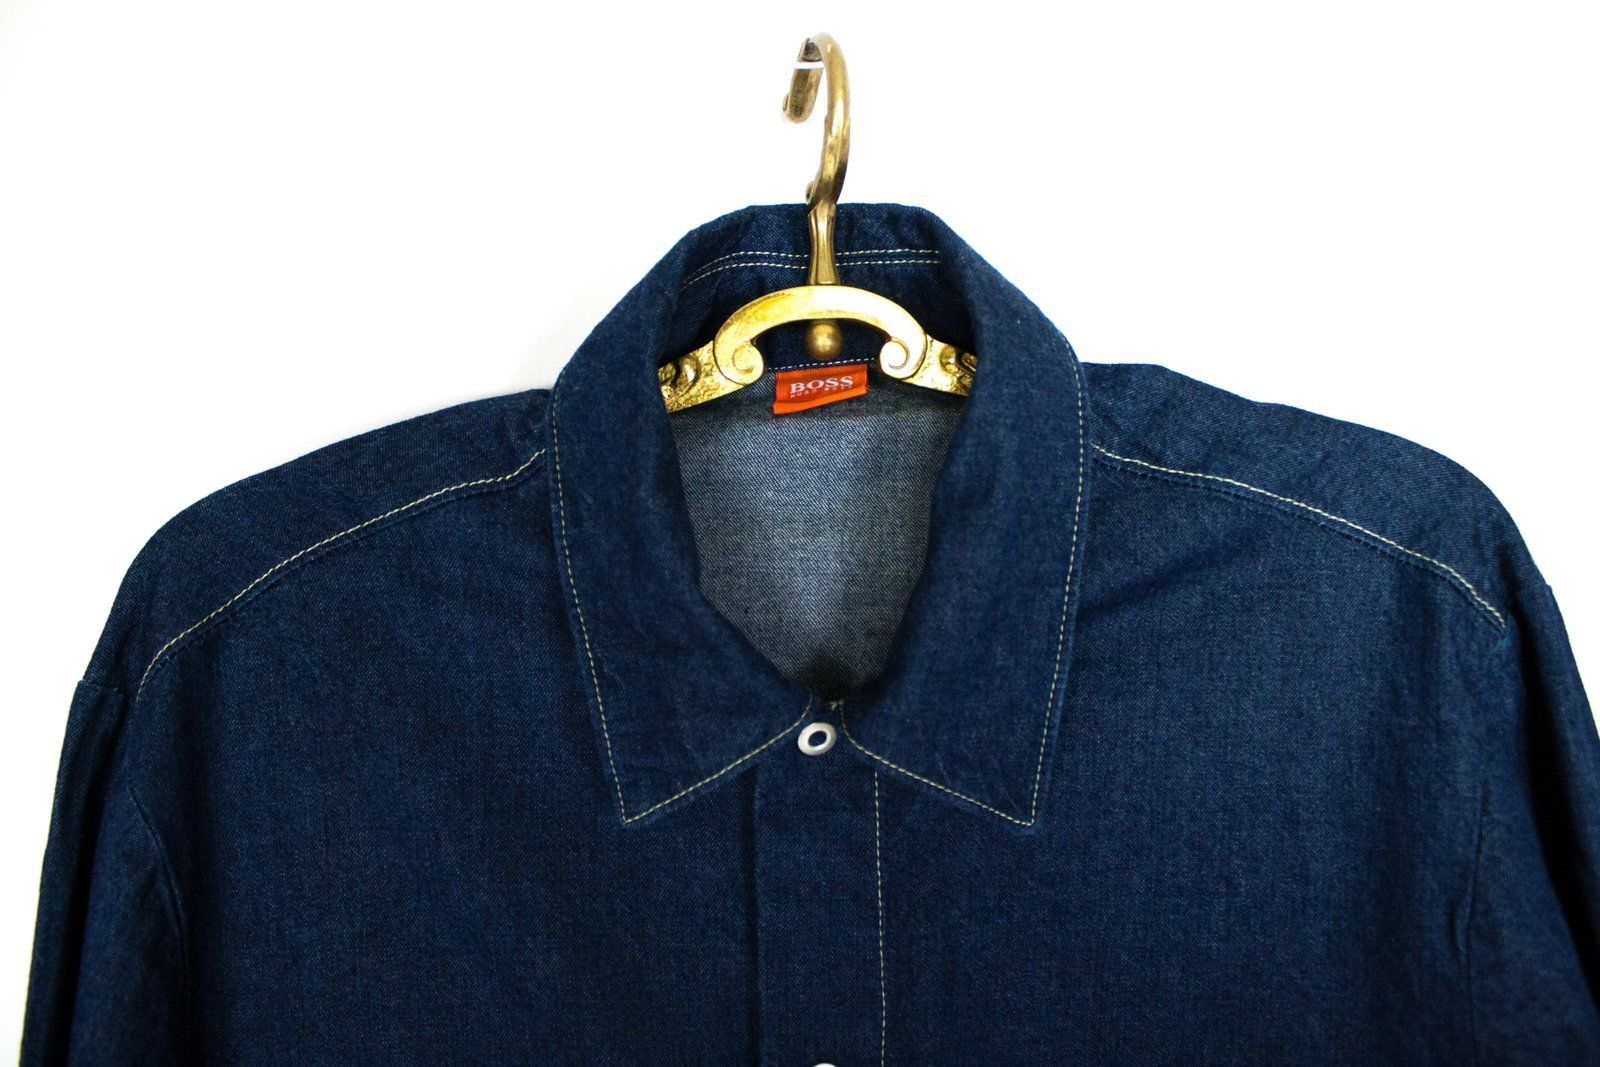 HUGO BOSS Orange Label men's blue denim shirt, SIZE S - secondfirst